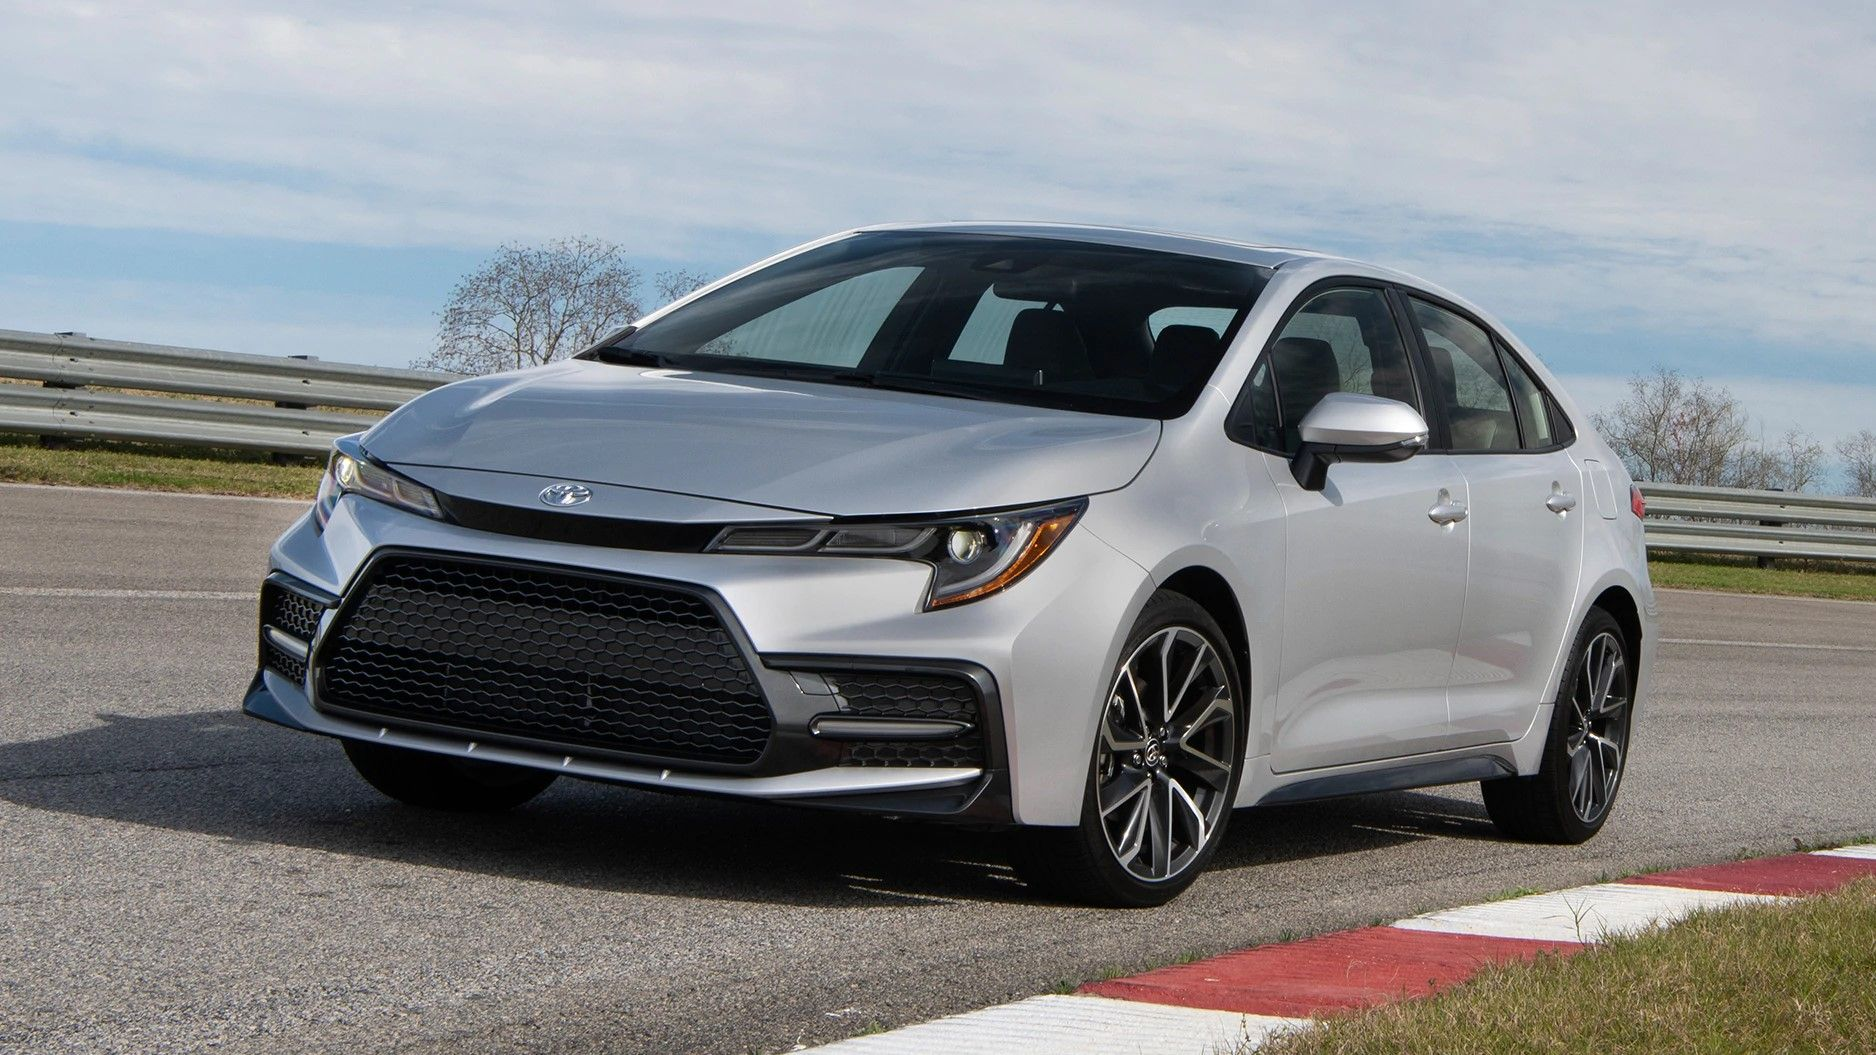 2021 Toyota Corolla Specs and Review